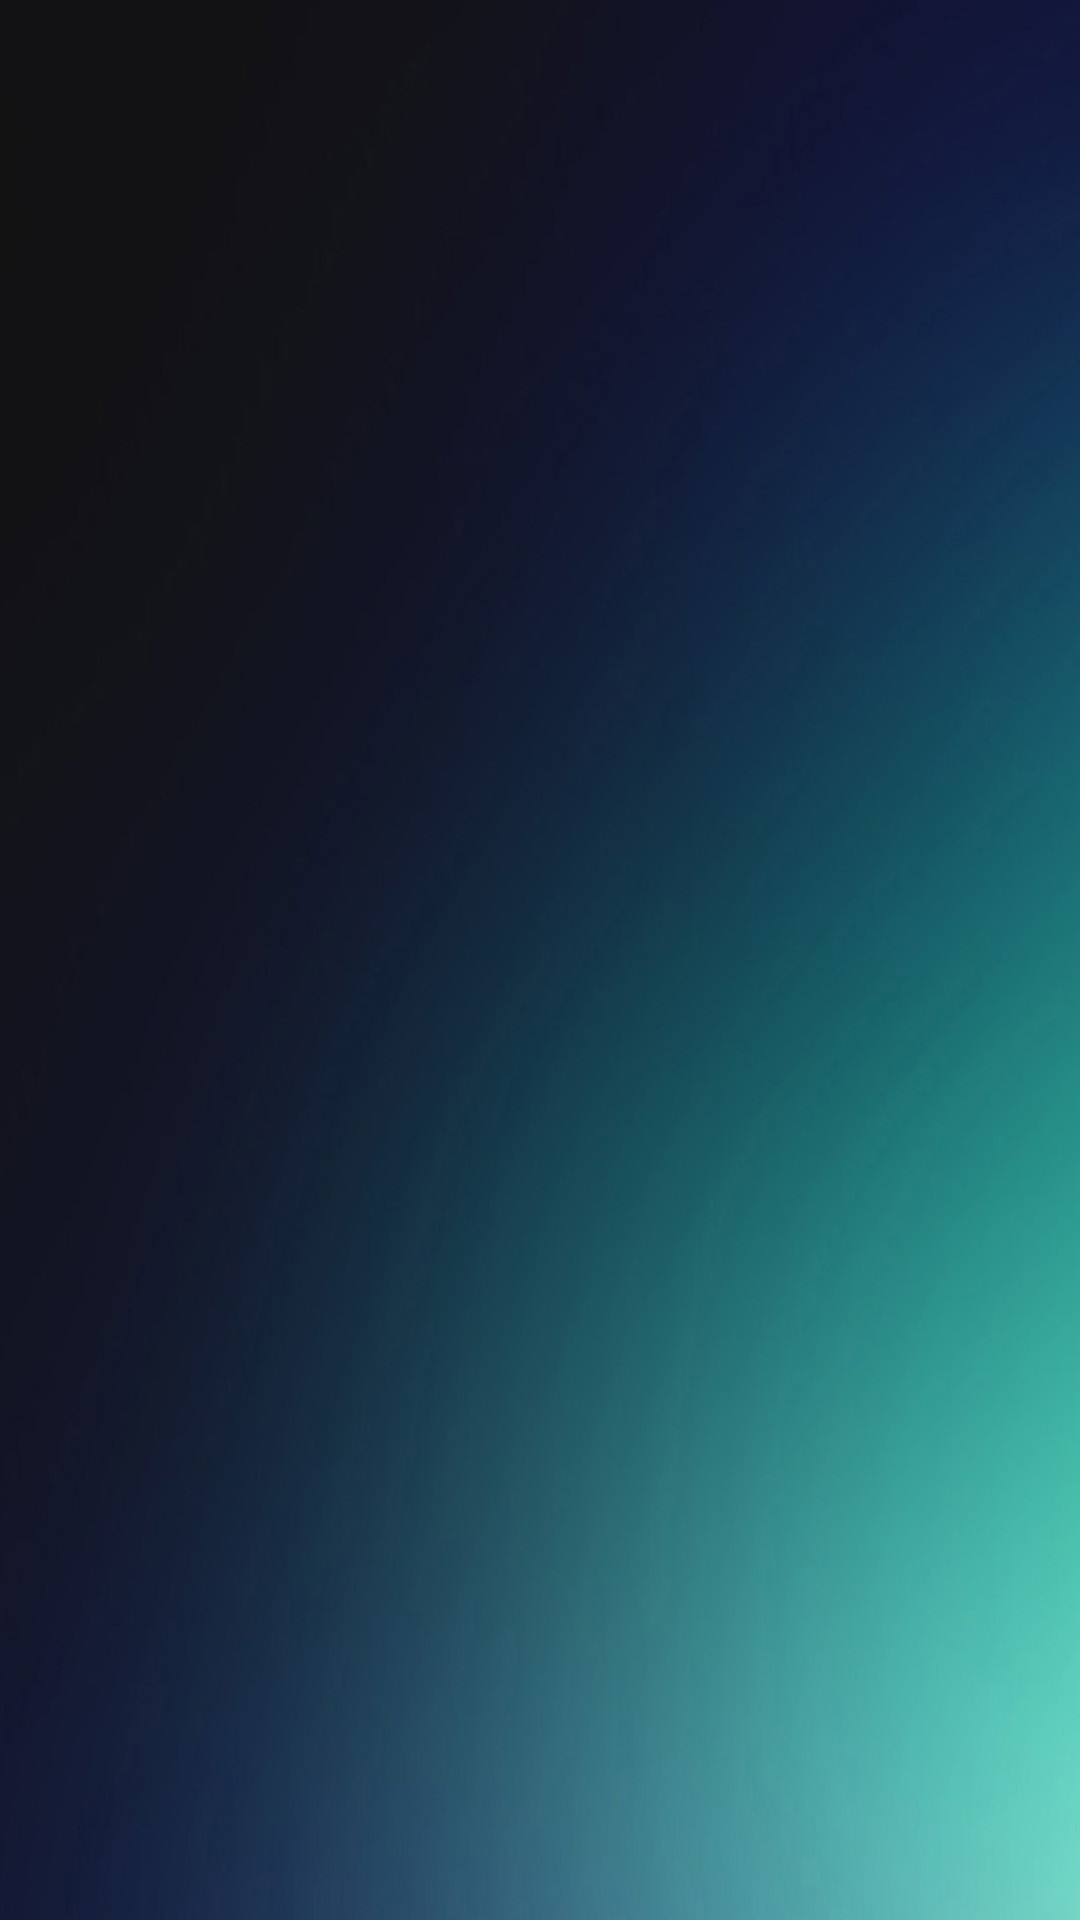 1080x1920 Blue Green Color Htc One M8 Wallpaper 95 Download